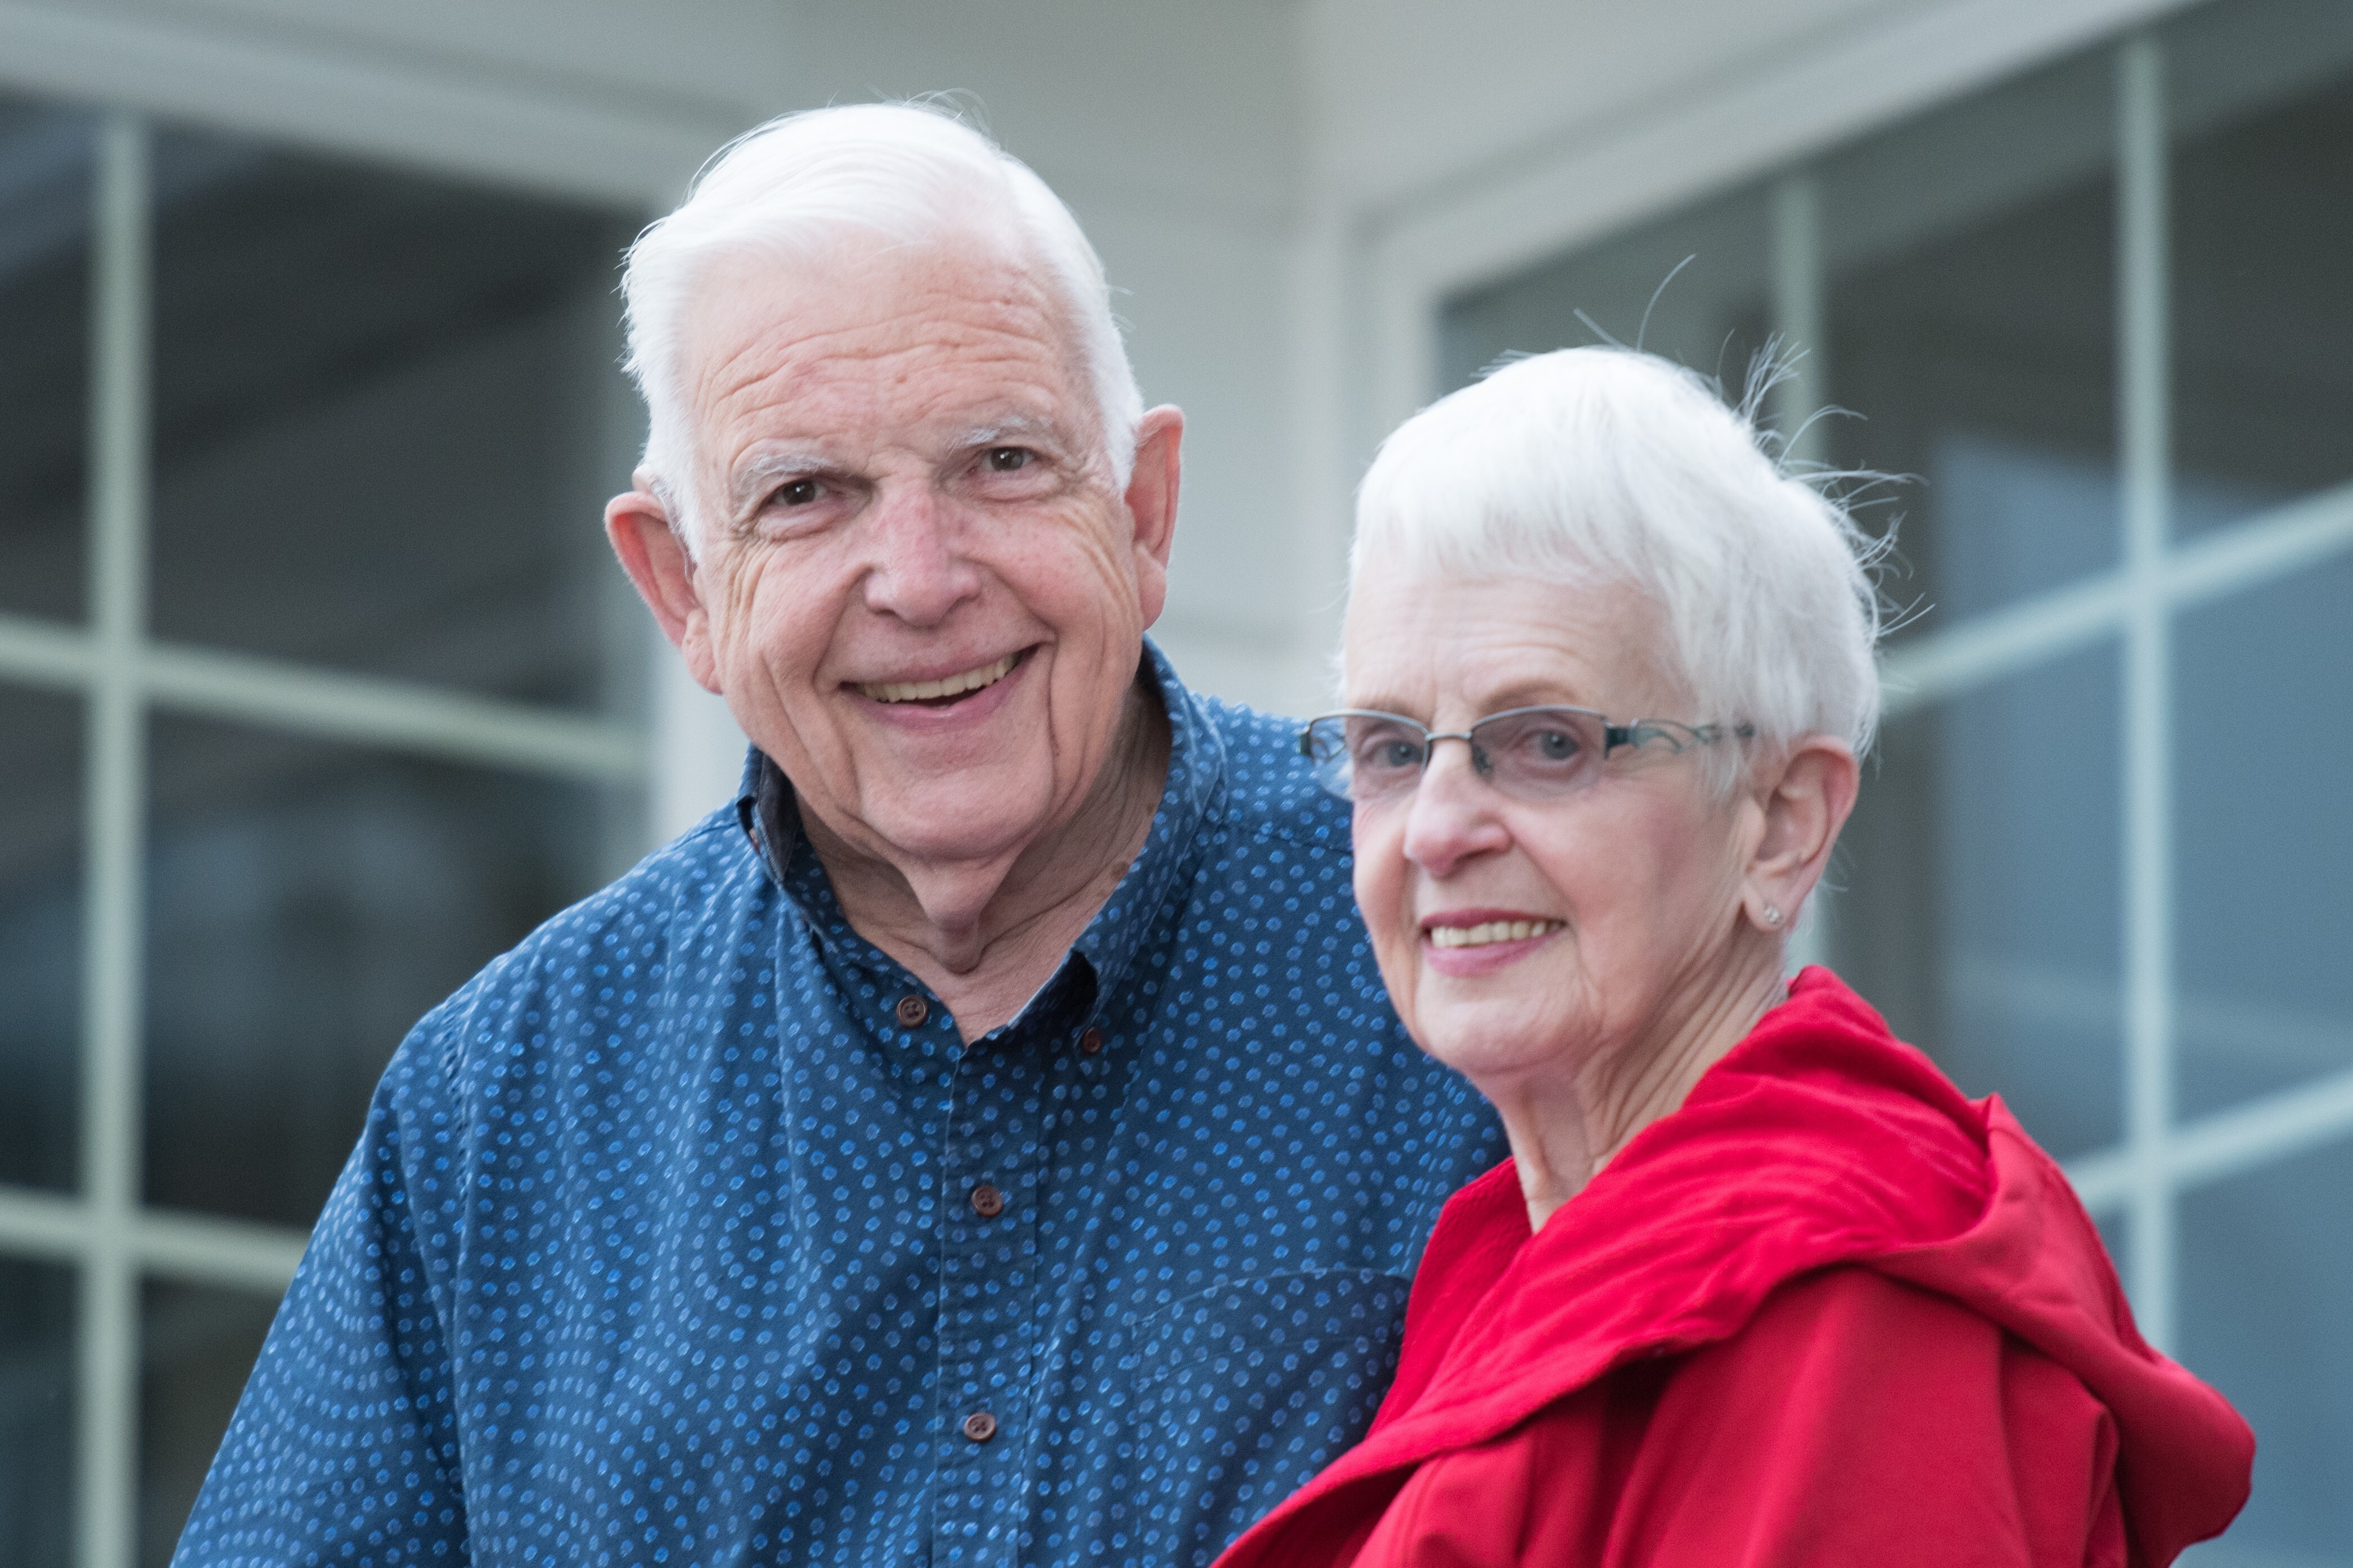 Color photo of older man in blue shirt and woman in red jacket. Both are smiling